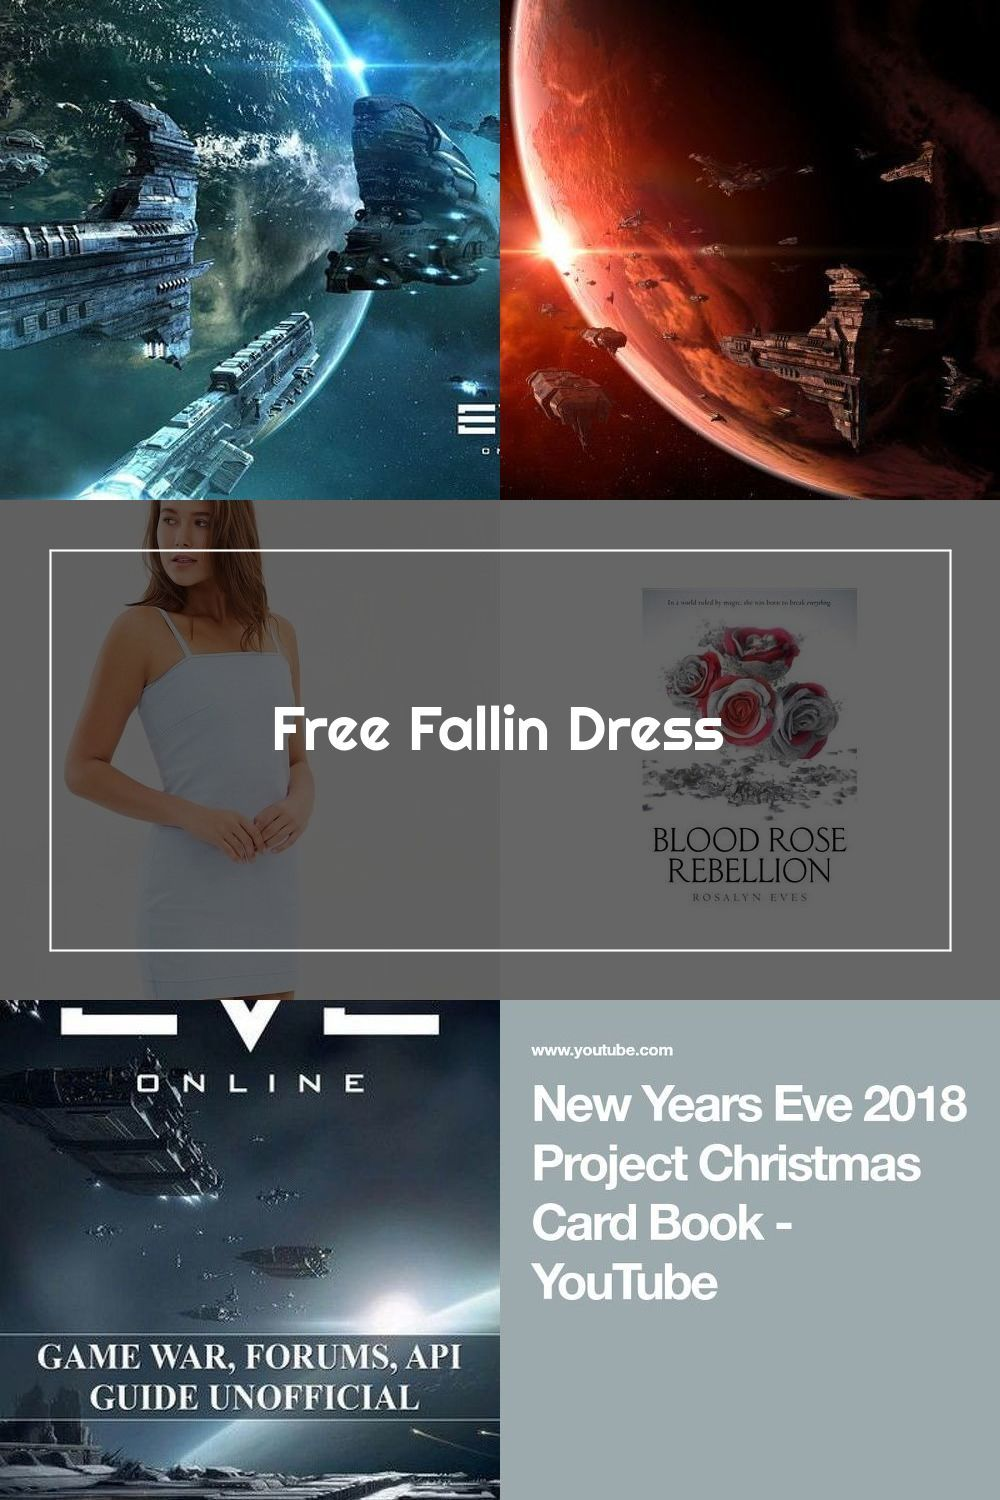 Eve Online Christmas 2020 Buy Free Fallin Dress by Maurie & Eve online at THE ICONIC. Free